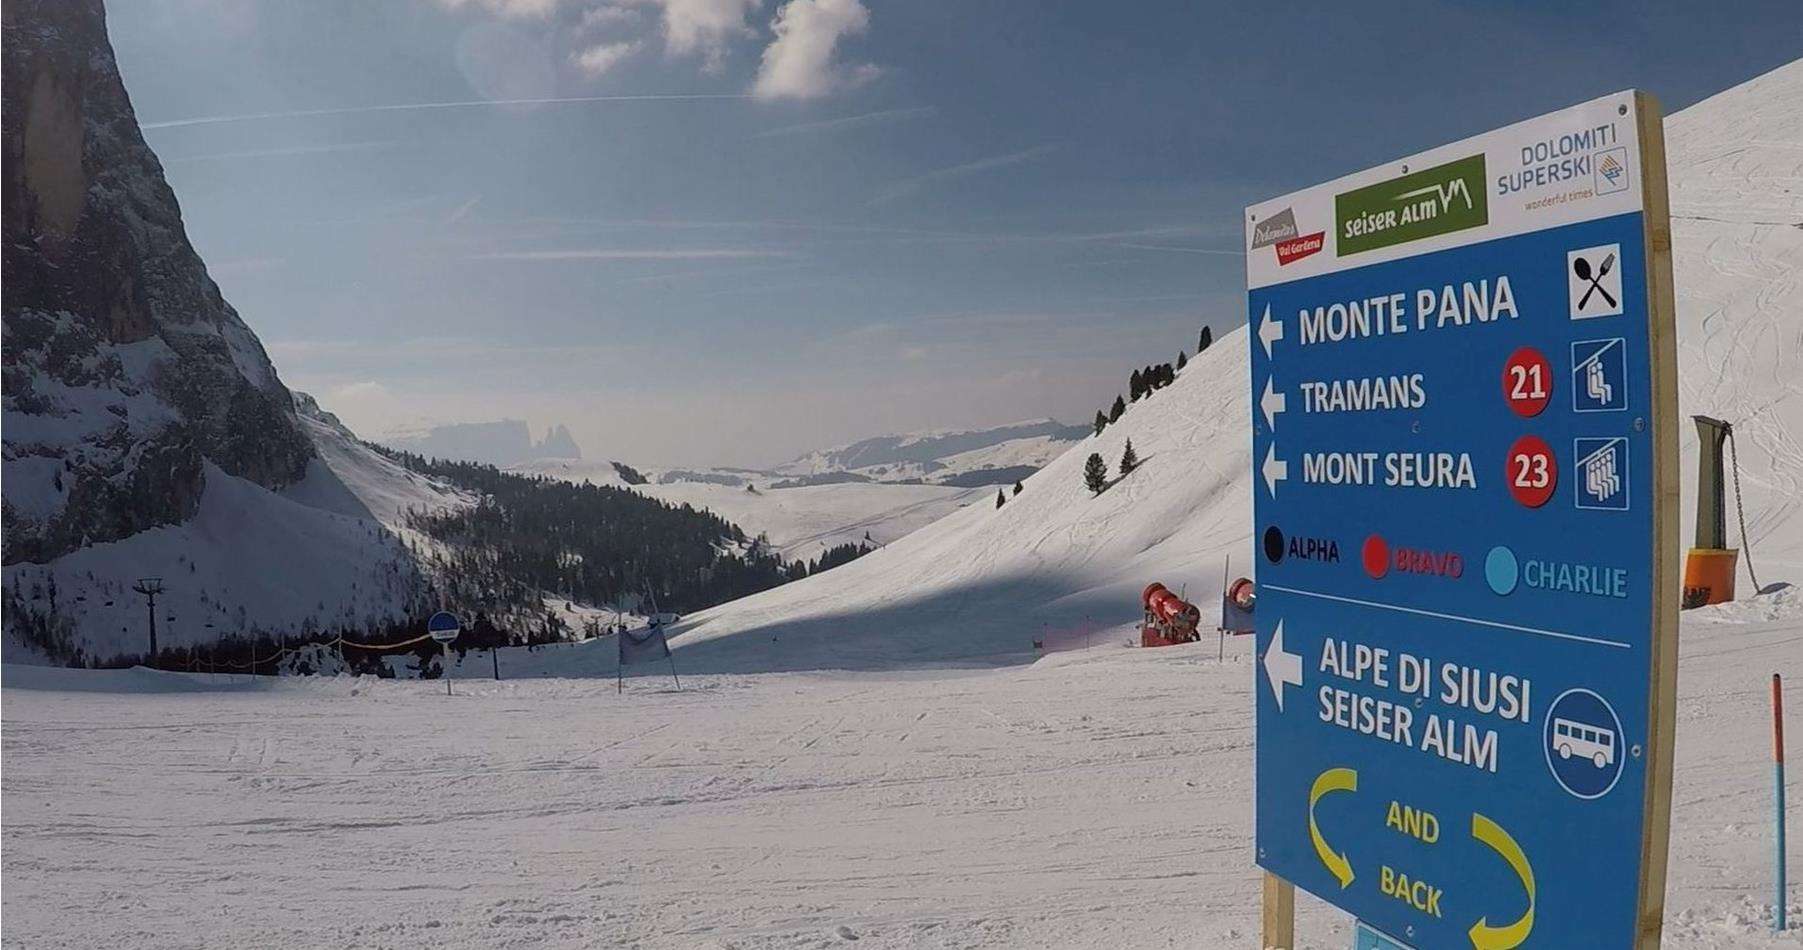 wintersport-dolomiti-superski-1[2]